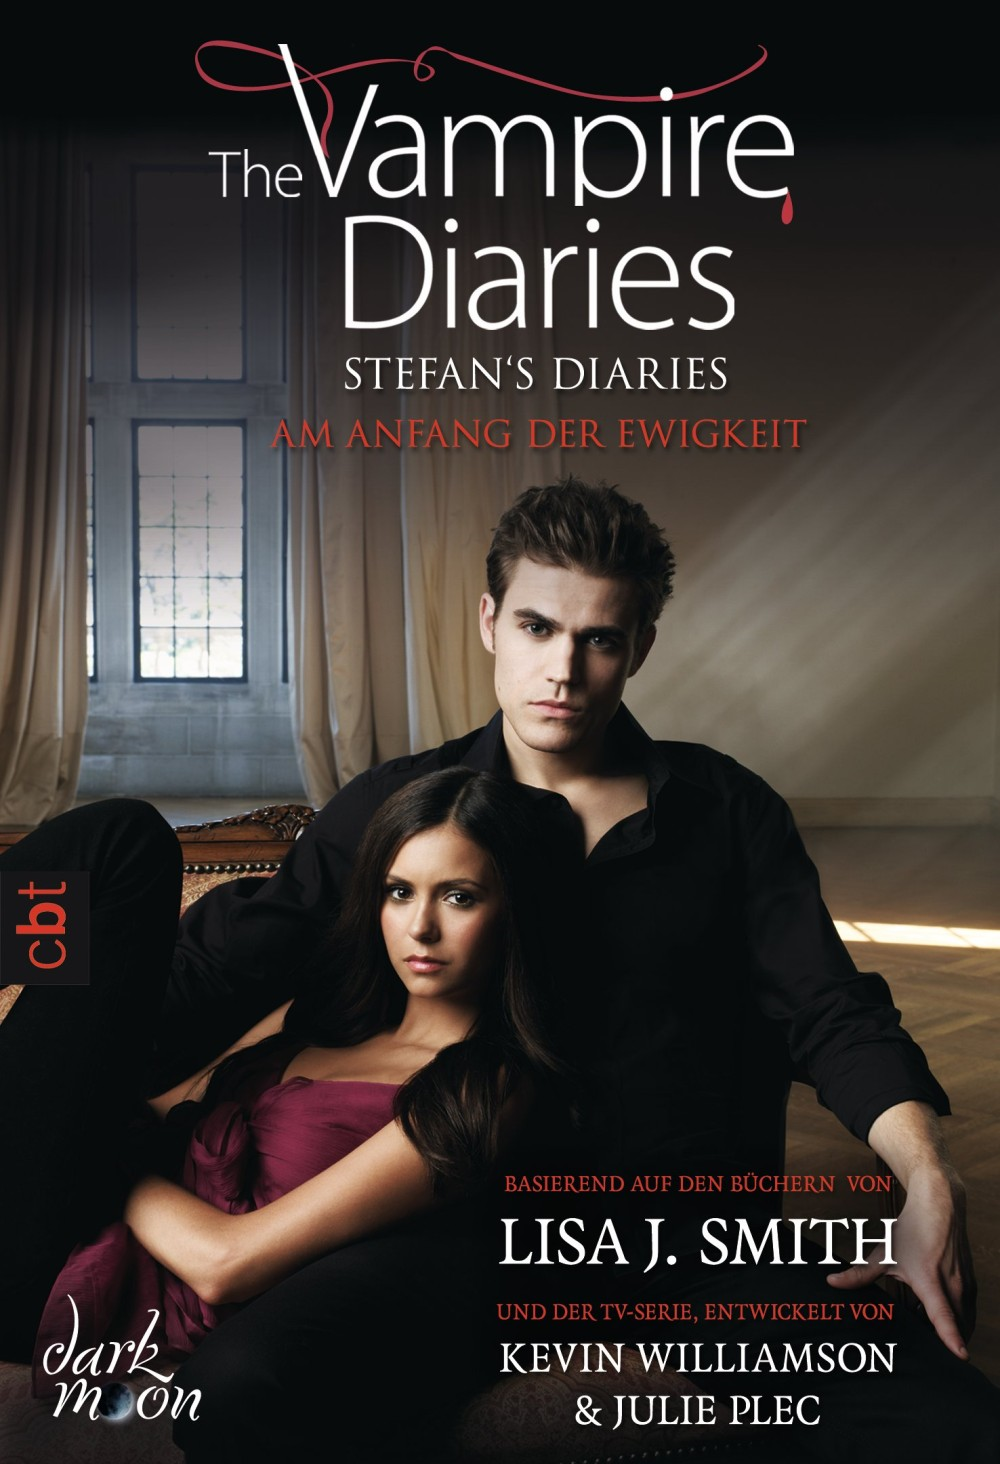 The Vampire Diaries - Stefan's Diaries - Am Anfang der Ewigkeit By: Lisa J. Smith